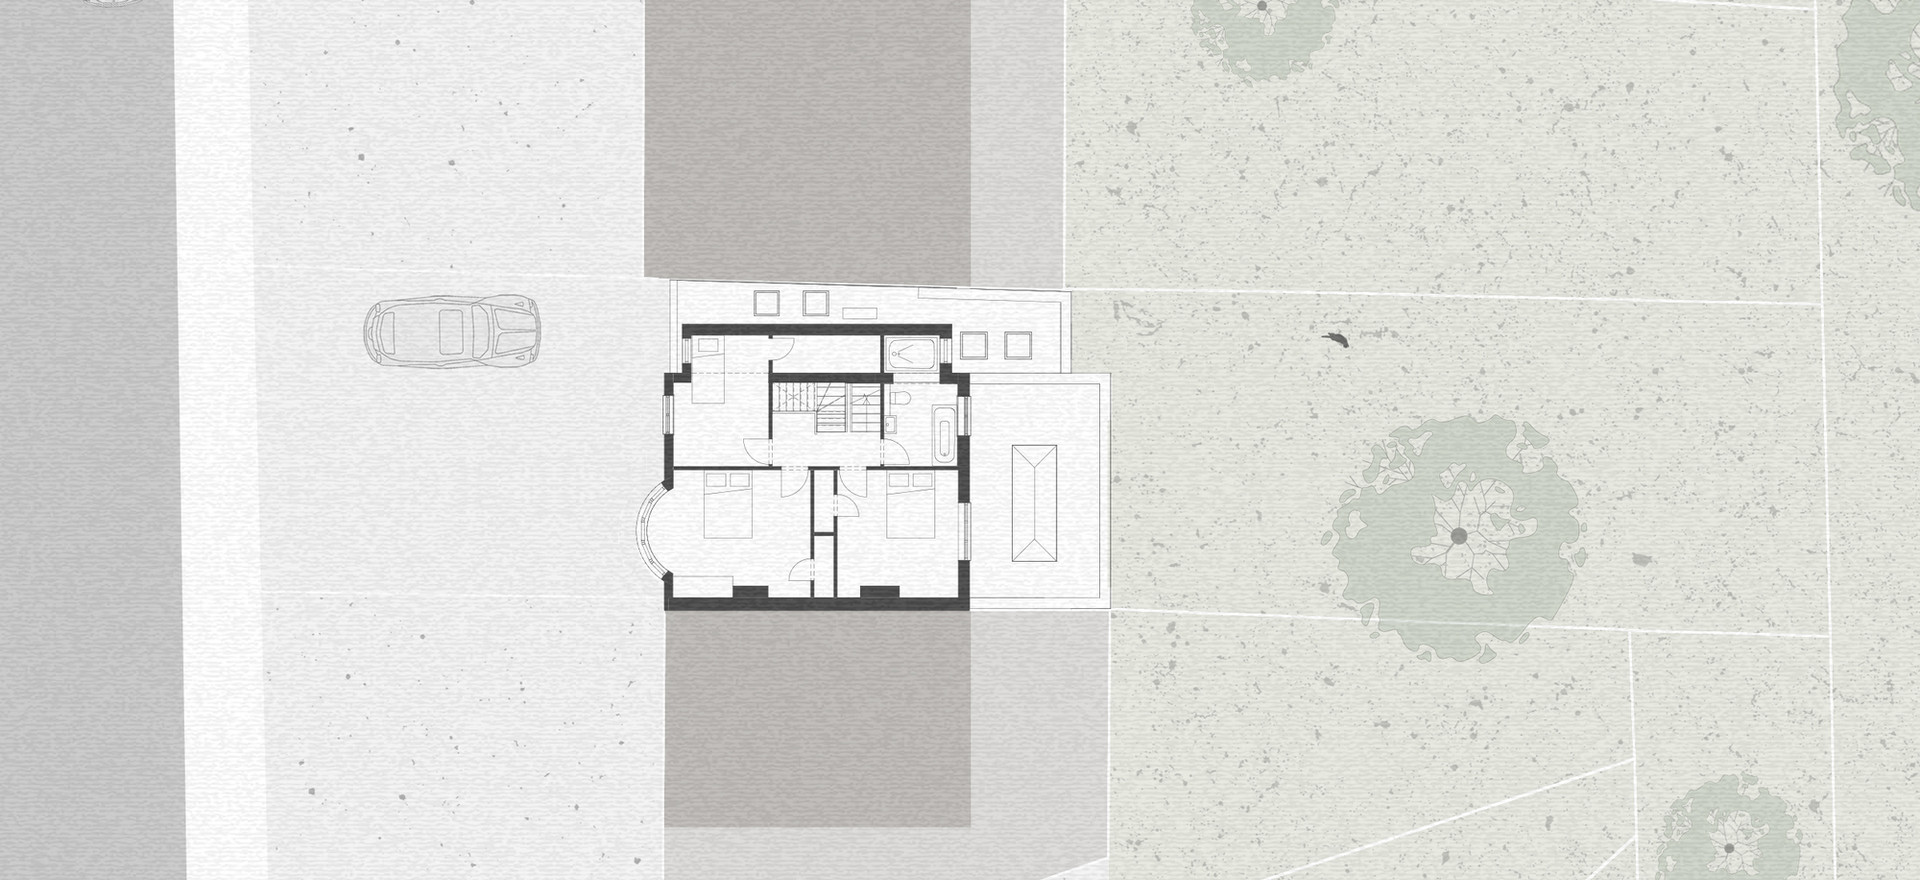 wr-ap_11PW_first floor plan.jpg